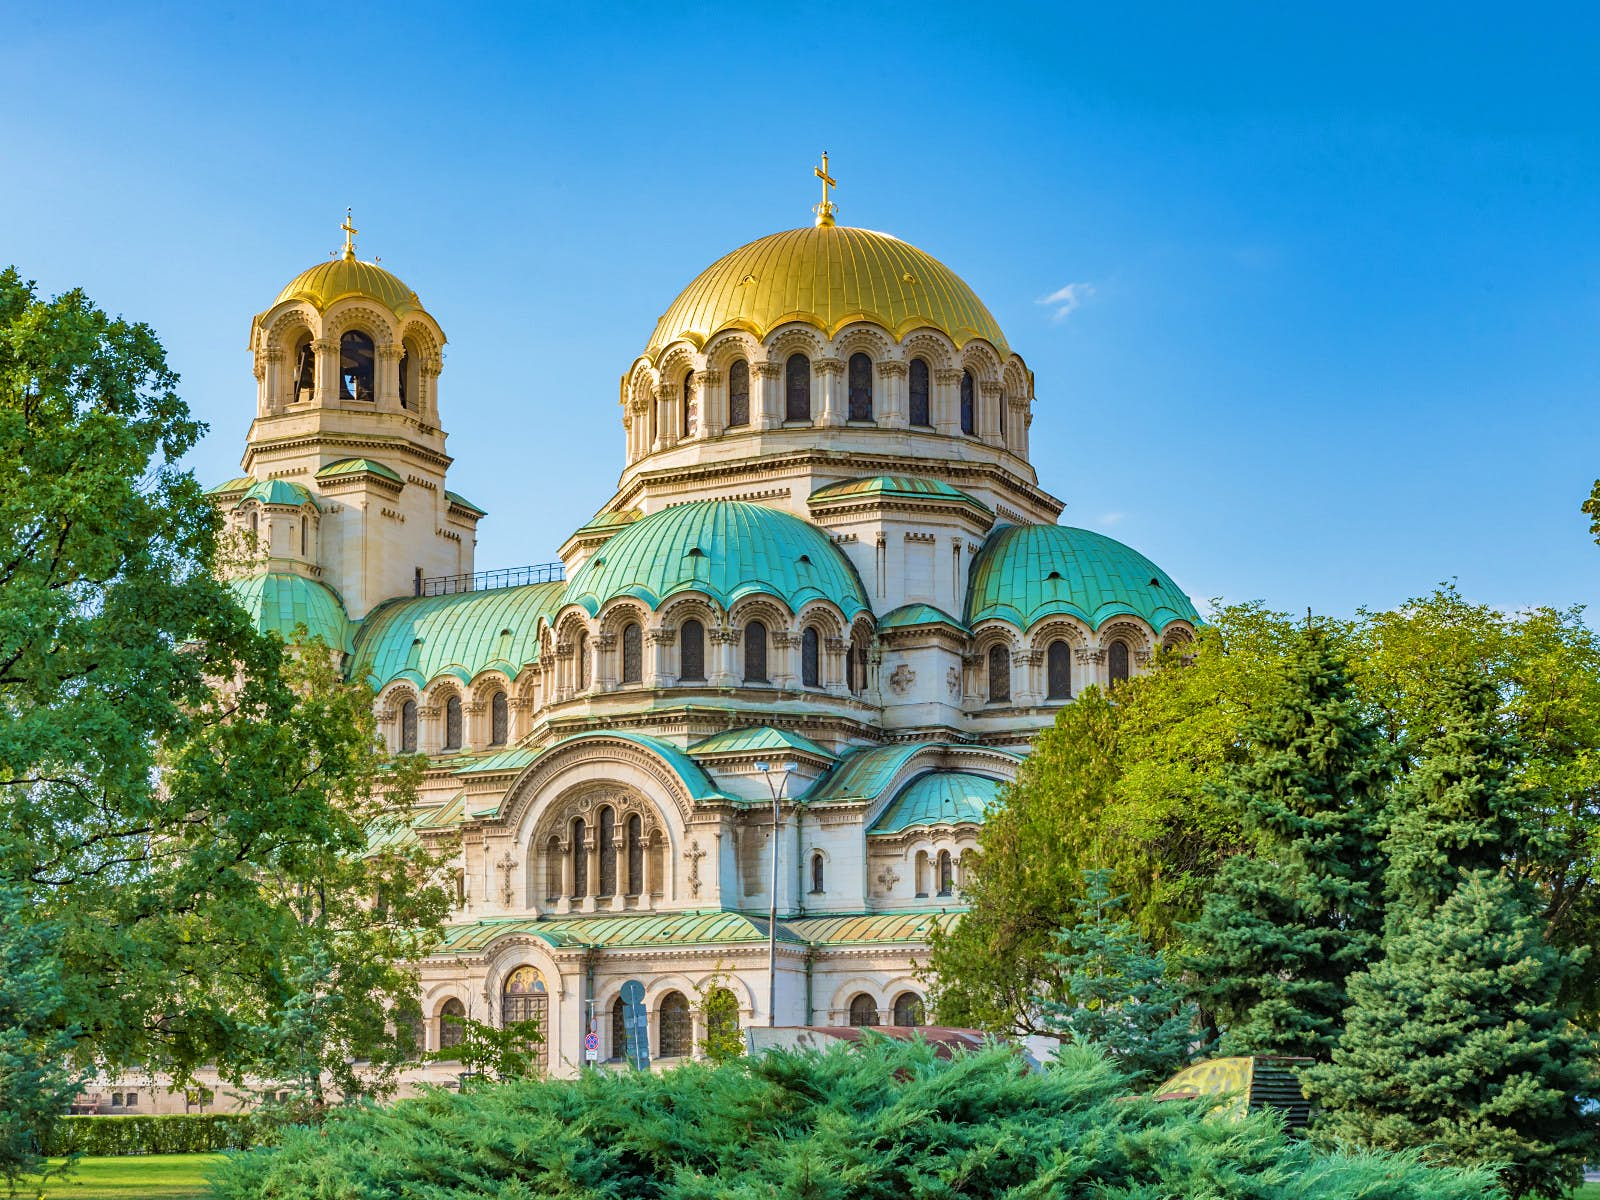 A large white church with several domed roofs in gold and teal colours